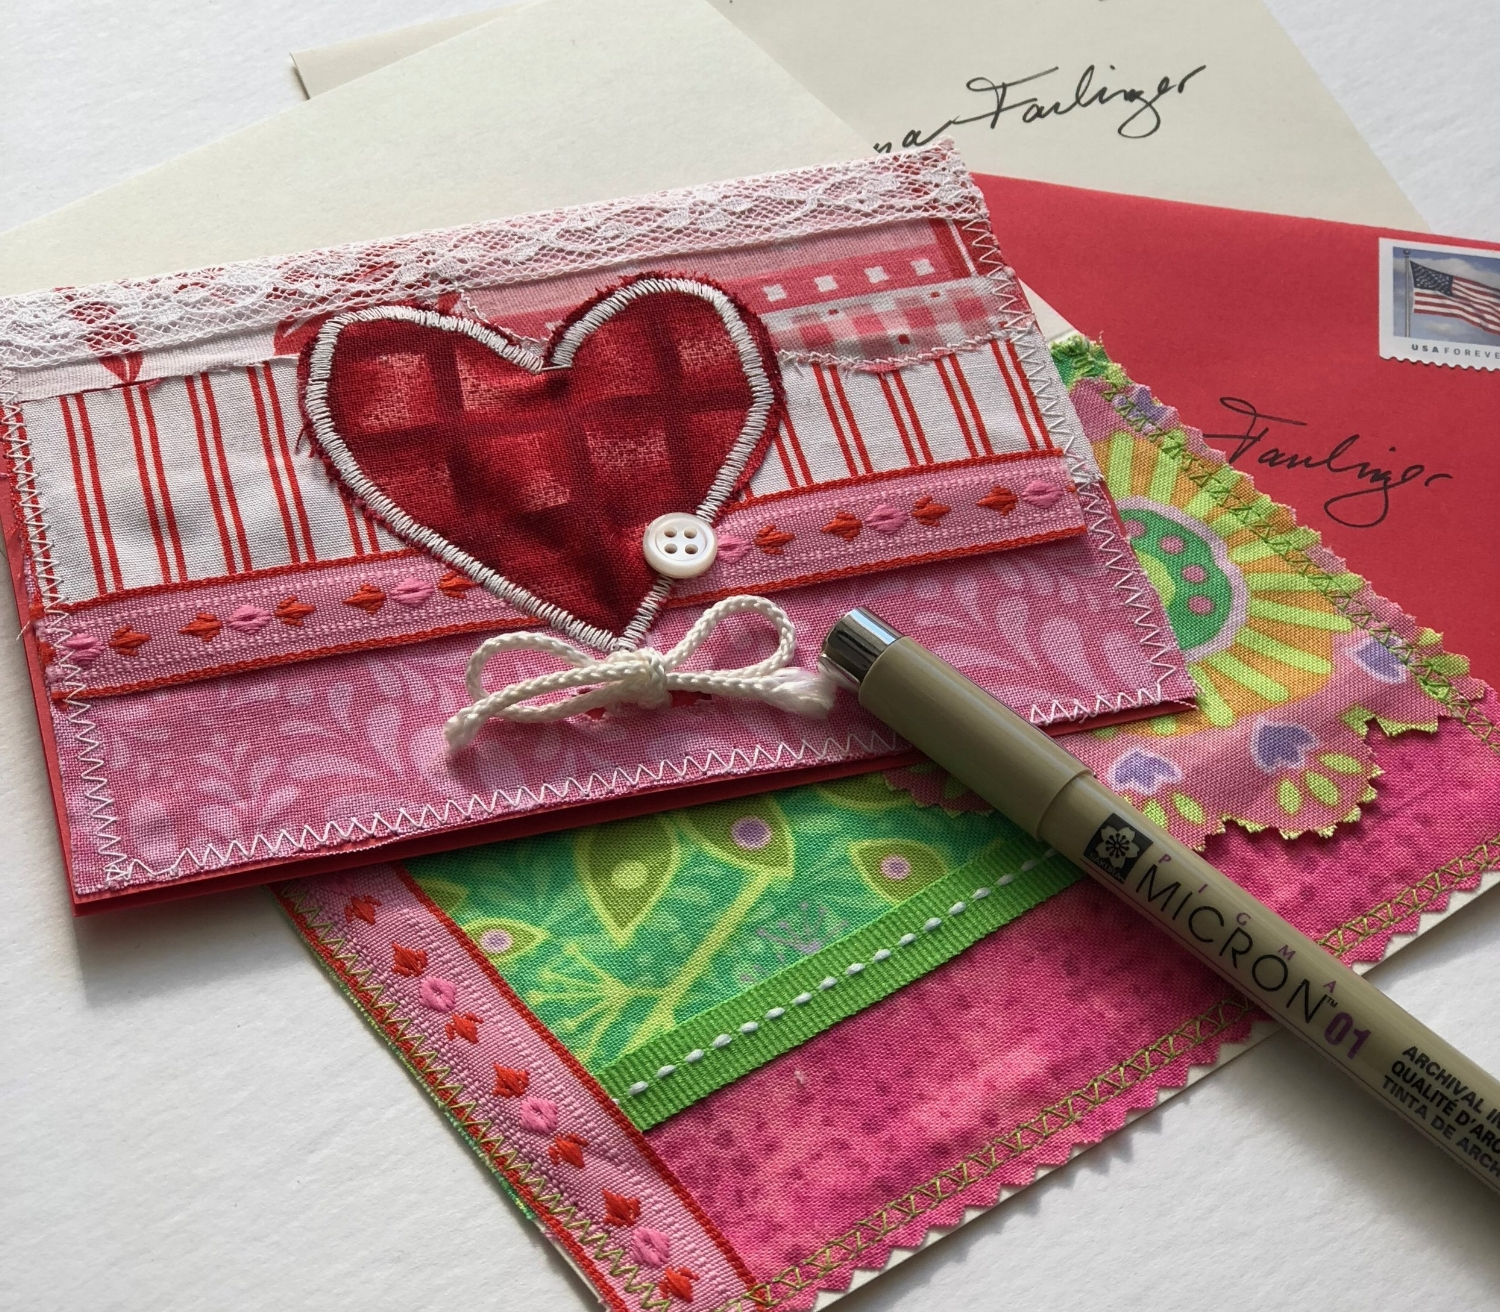 5 - I used a button to cover up a small area of stitching that looked inconsistent.Get creative with other ideas and supplies you have in your stash! You can create birthday or holiday cards of all kinds with items you have in your